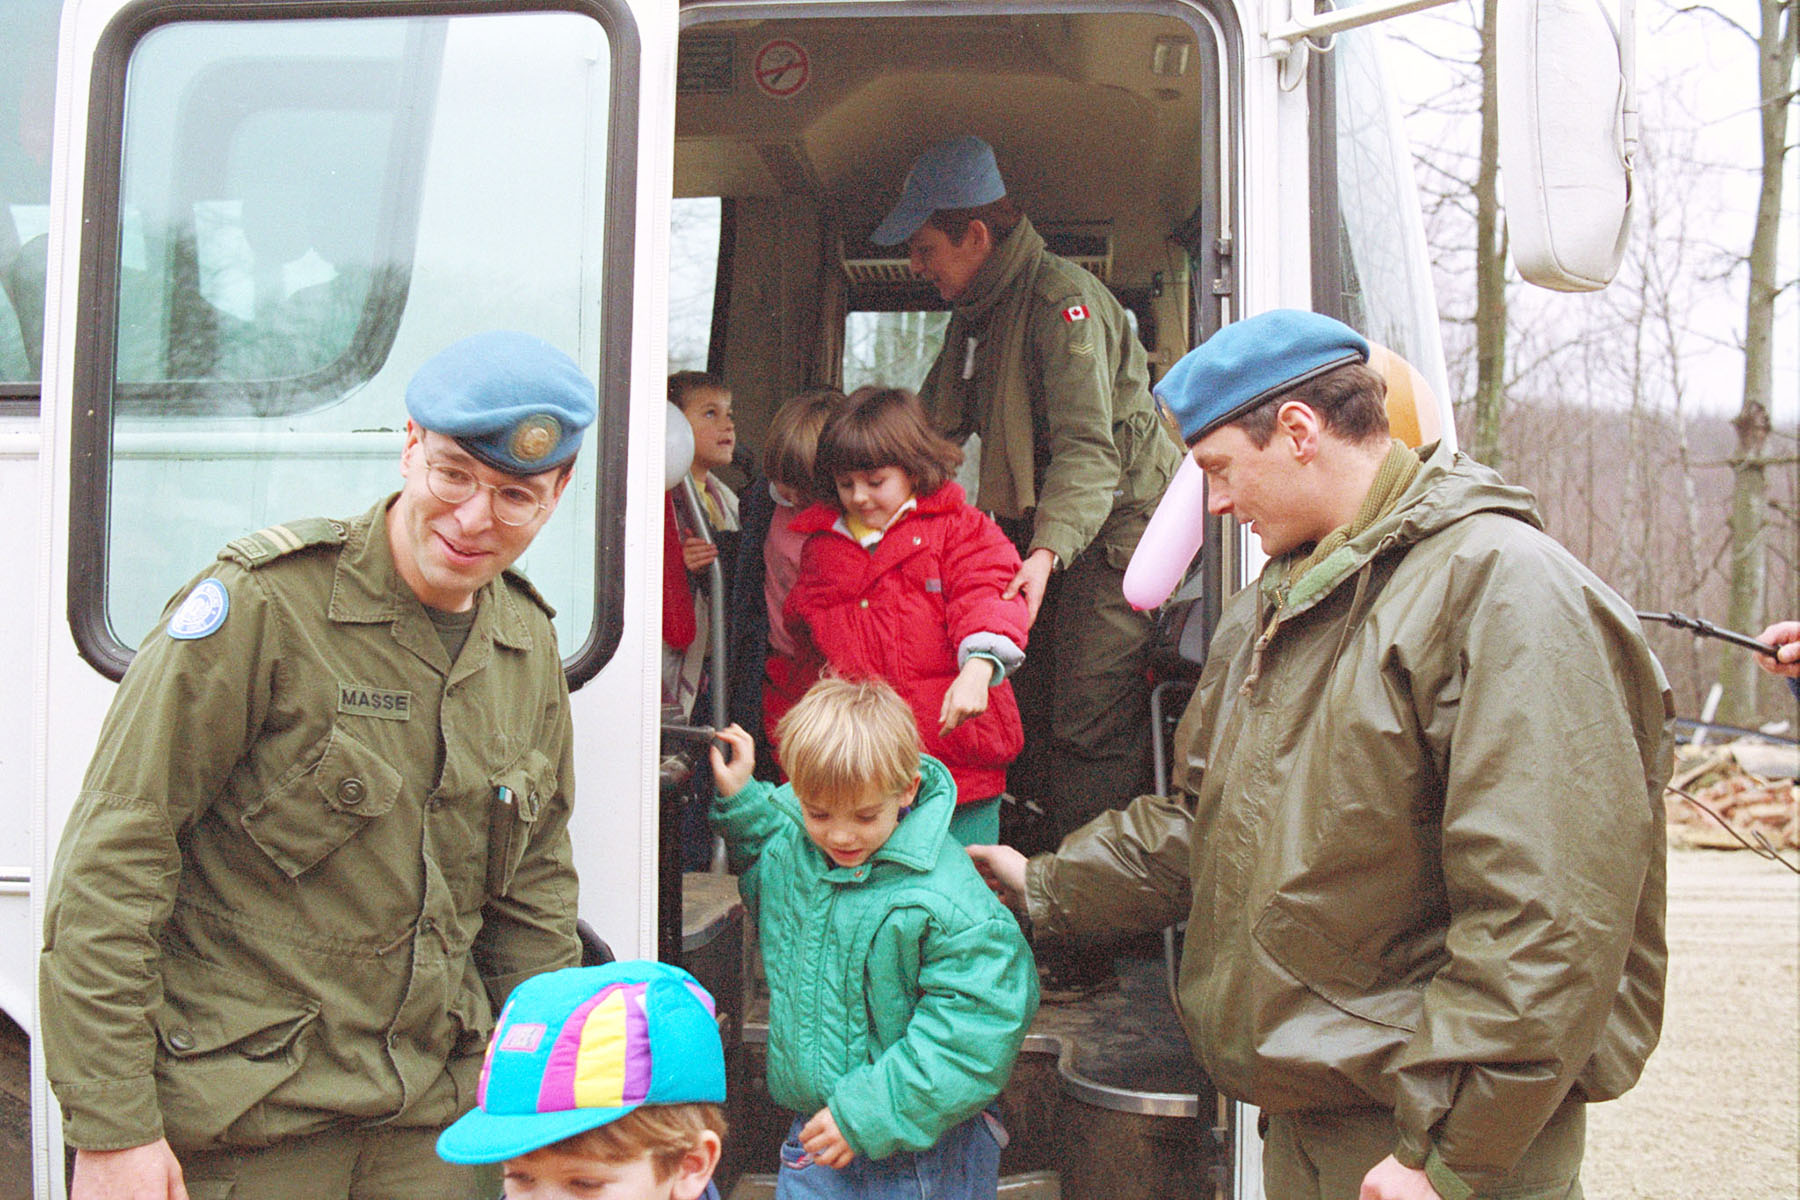 In Daruvar, Croatia, in 1992, Captain Phillipe Masse (left) and Captain Richard Nantel assist schoolchildren from the bus that has carried them to the Children's Christmas Party at Camp Polom. The children were hosted by personnel who were on peacekeeping duty in Croatia. PHOTO: Sergeant R. Thompson